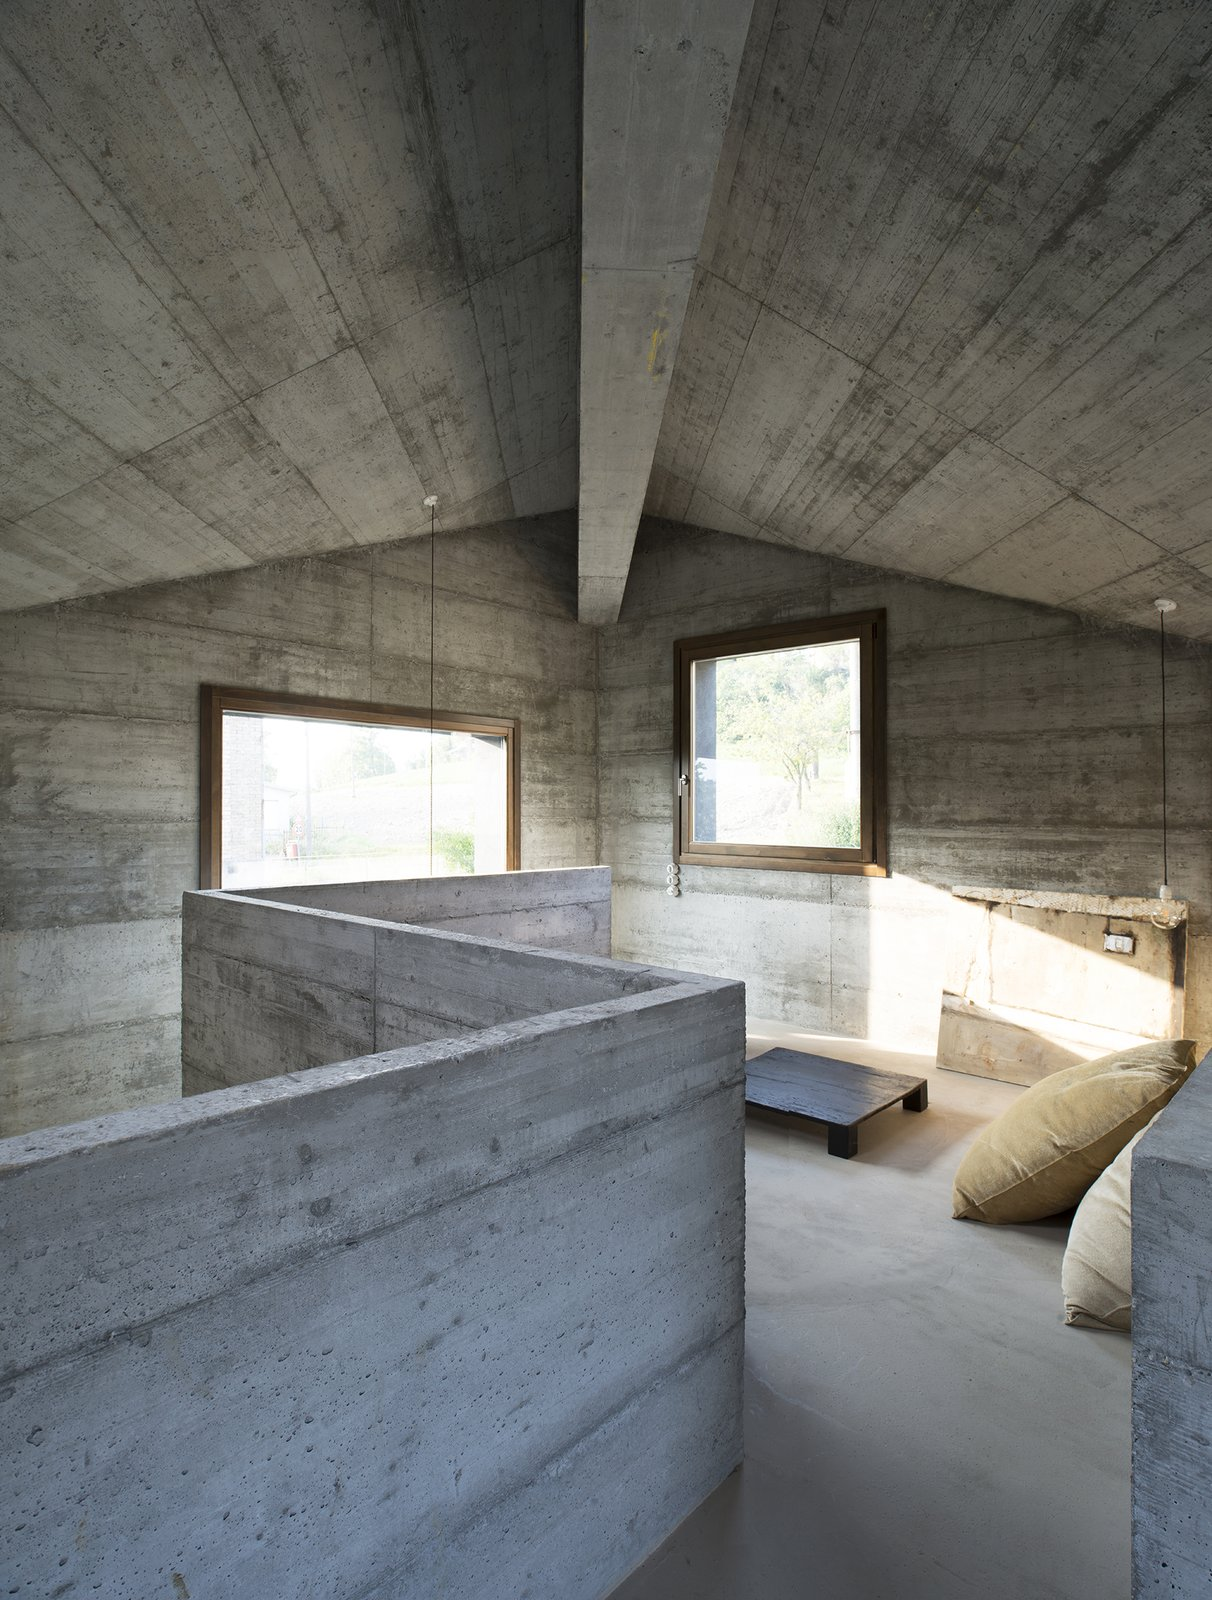 Bedroom, Bed, Concrete Floor, and Pendant Lighting  HOUSE R